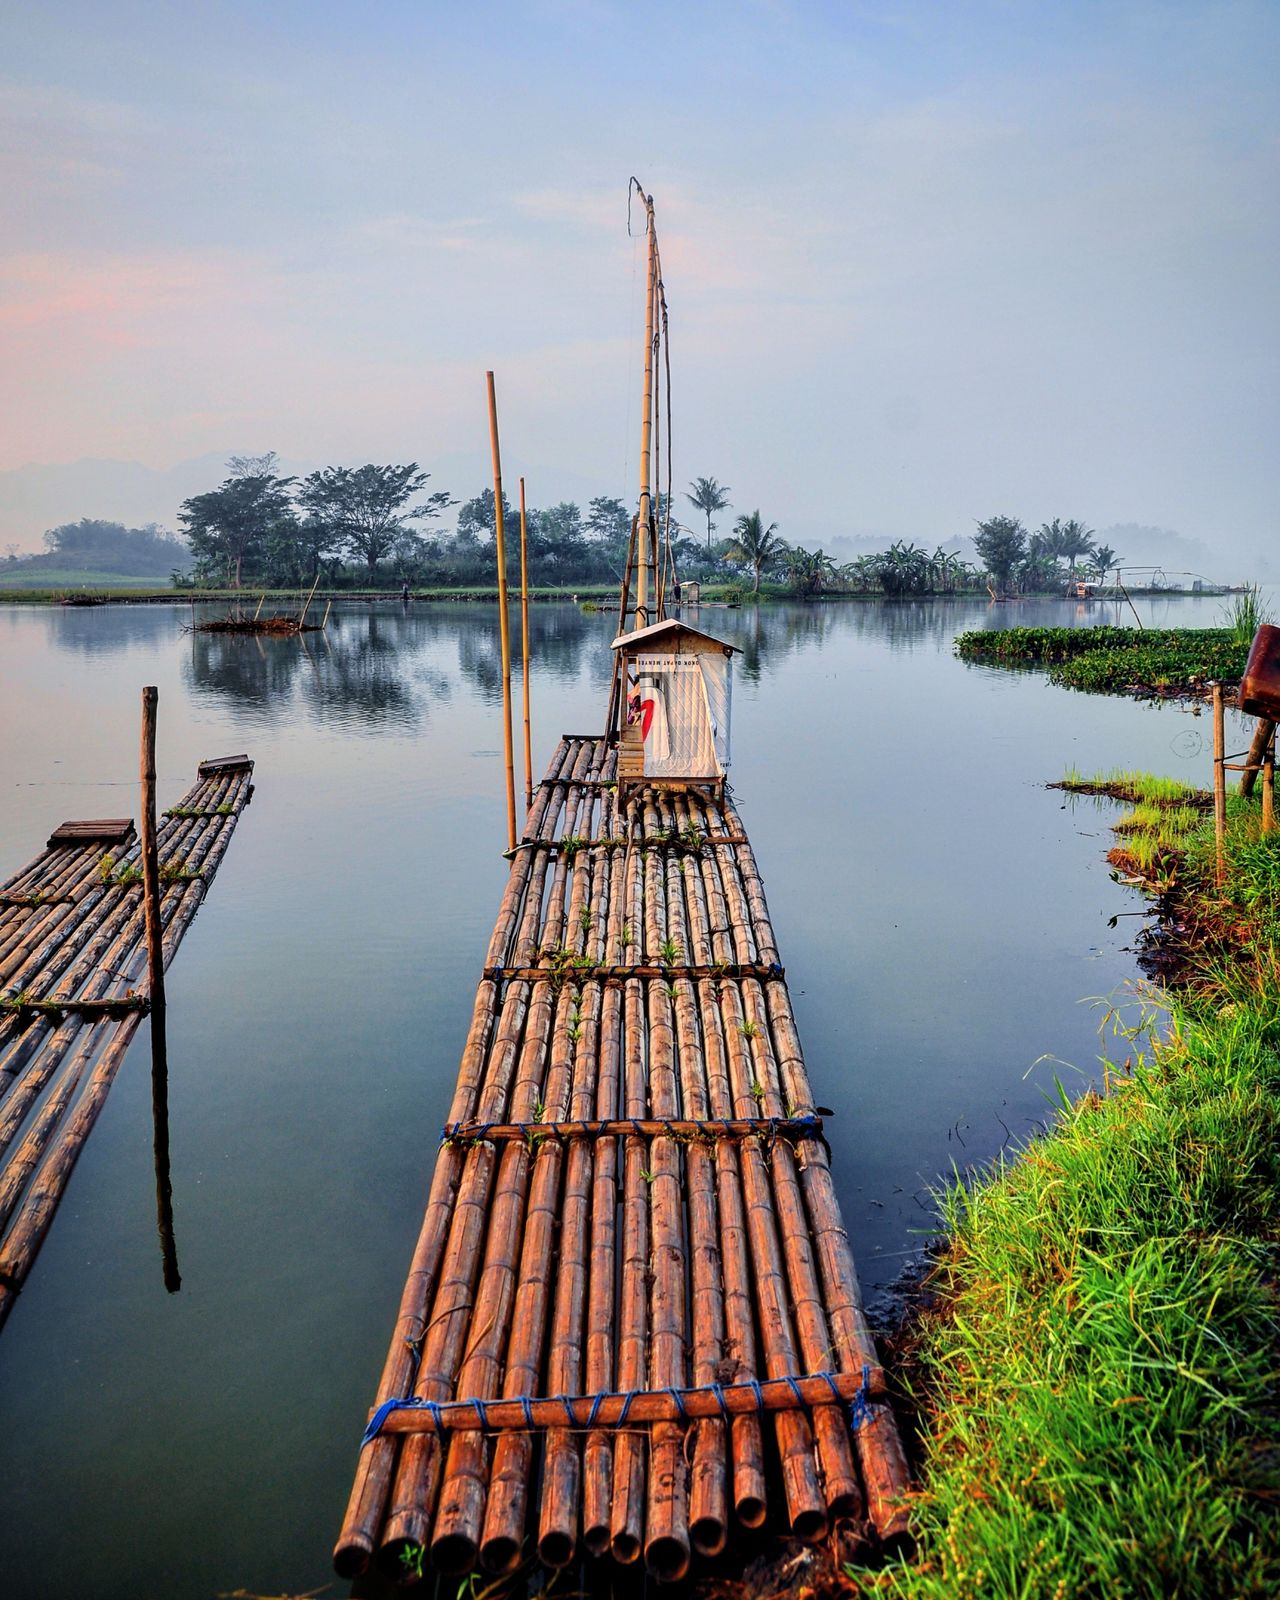 Water Reflection Lake Sky Travel Nature Tranquility Nautical Vessel No People Outdoors Social Issues Beauty In Nature Scenics Day INDONESIA Vacations Landscape Travel Photography Traveler Traveling Travel Destinations Travel Travelling Morning Relaxation